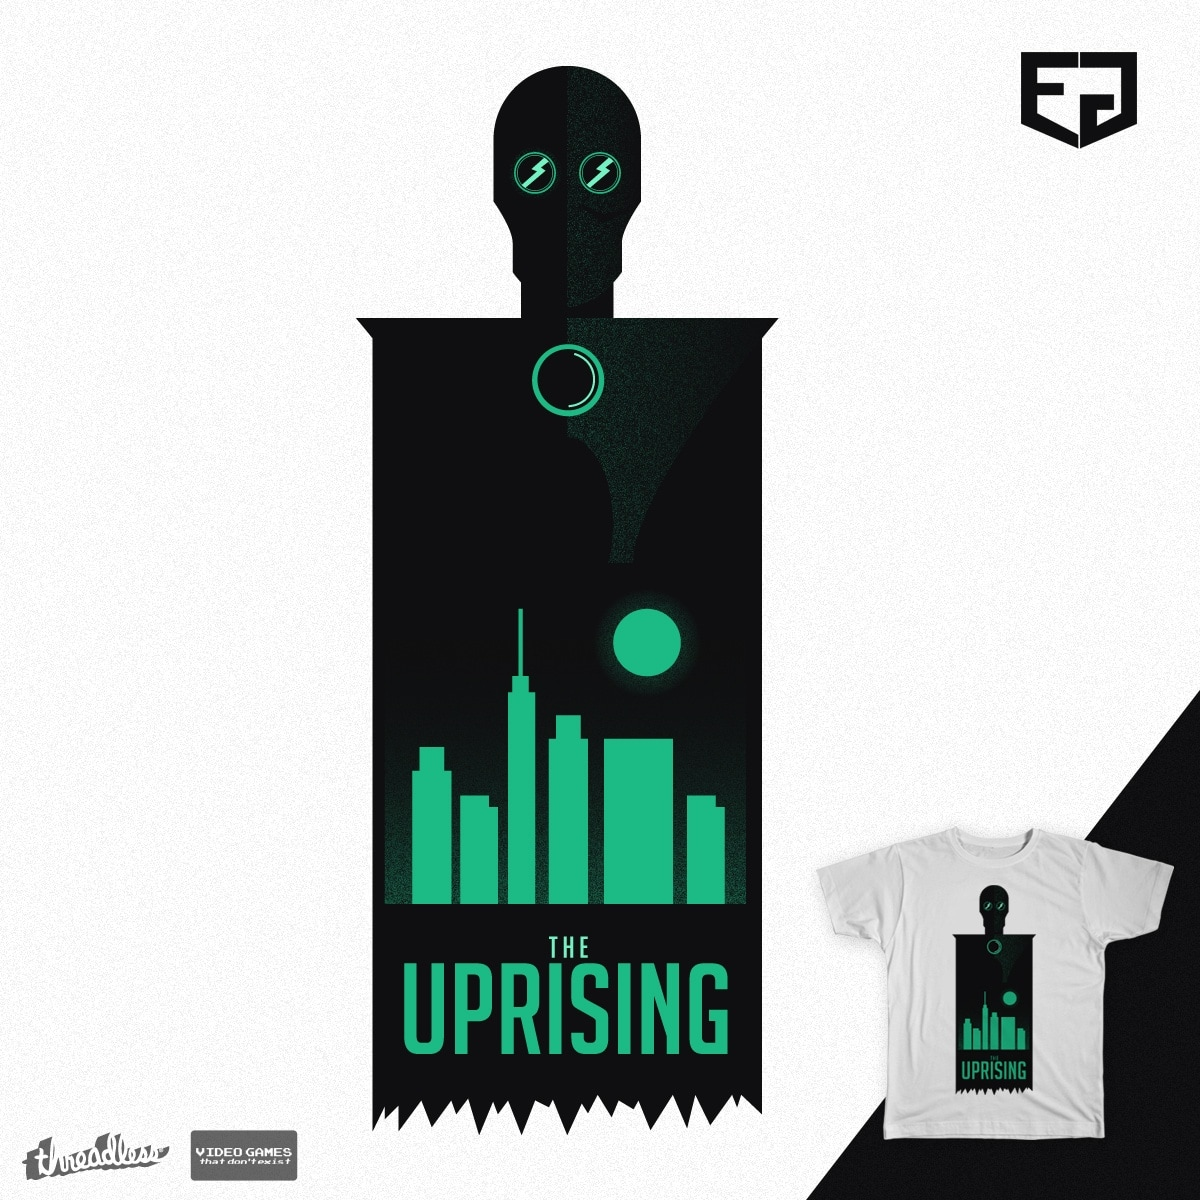 The Uprising by Ephyeah on Threadless